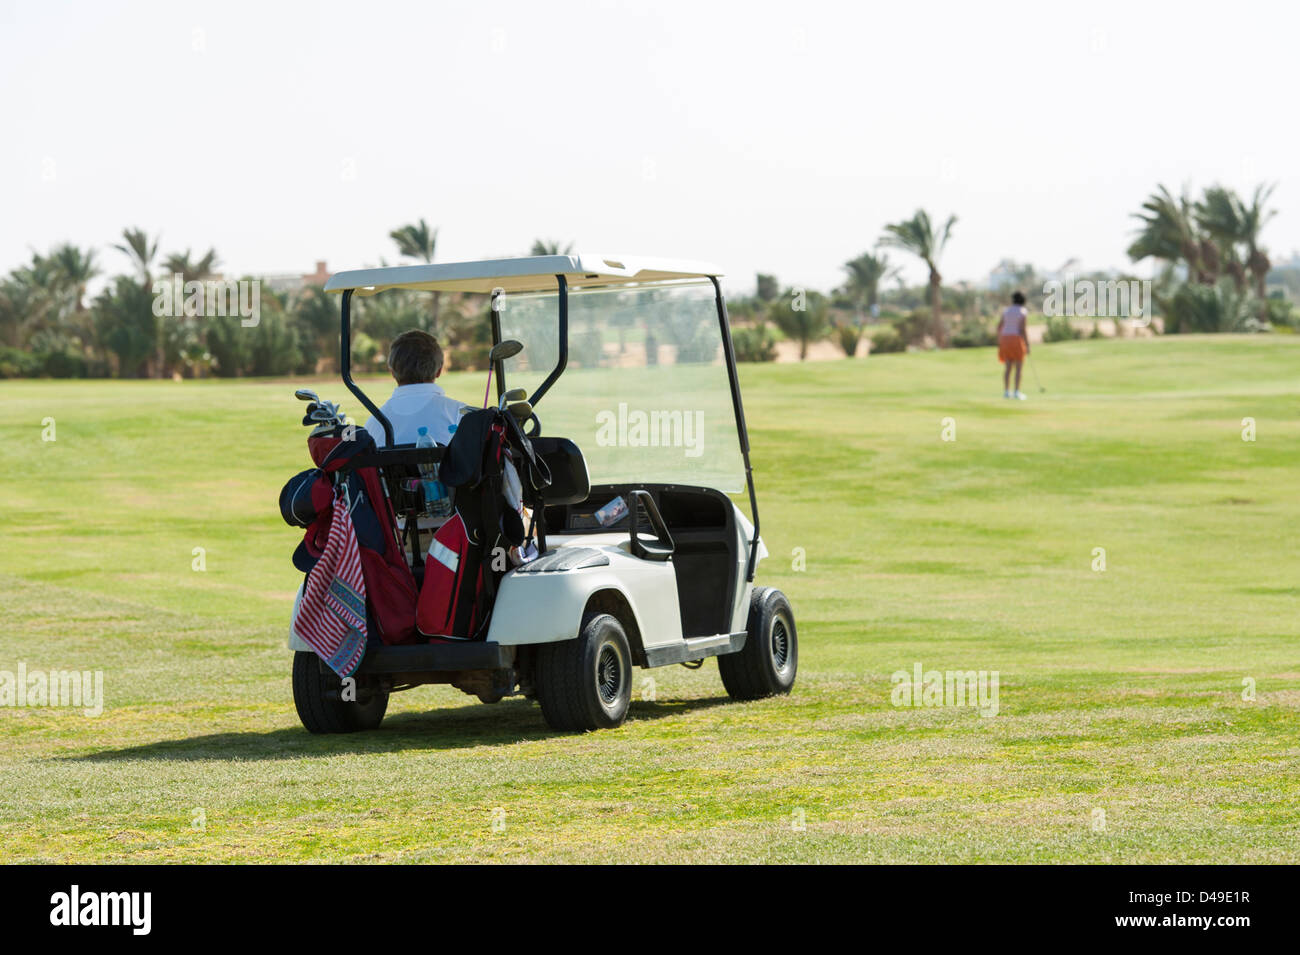 Electric golf buggy being driven on the fairway with golfer in the distance - Stock Image